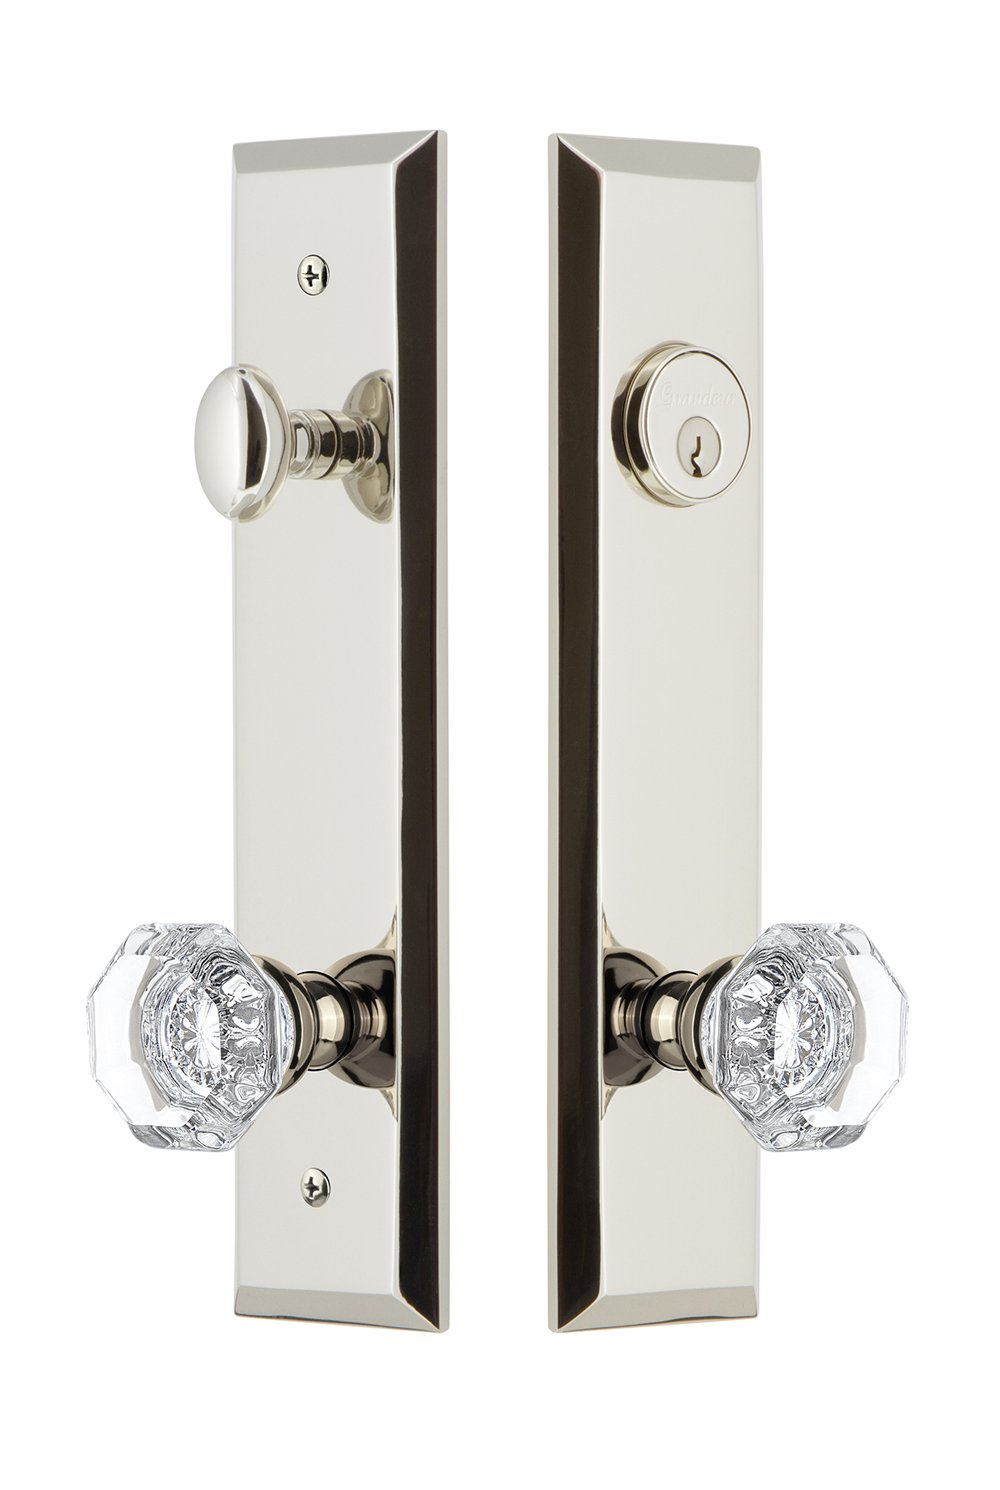 2.375 Backset Size Antique Pewter Grandeur Hardware 840621 Fifth Avenue Tall Plate Complete Entry Set with Chambord Knob